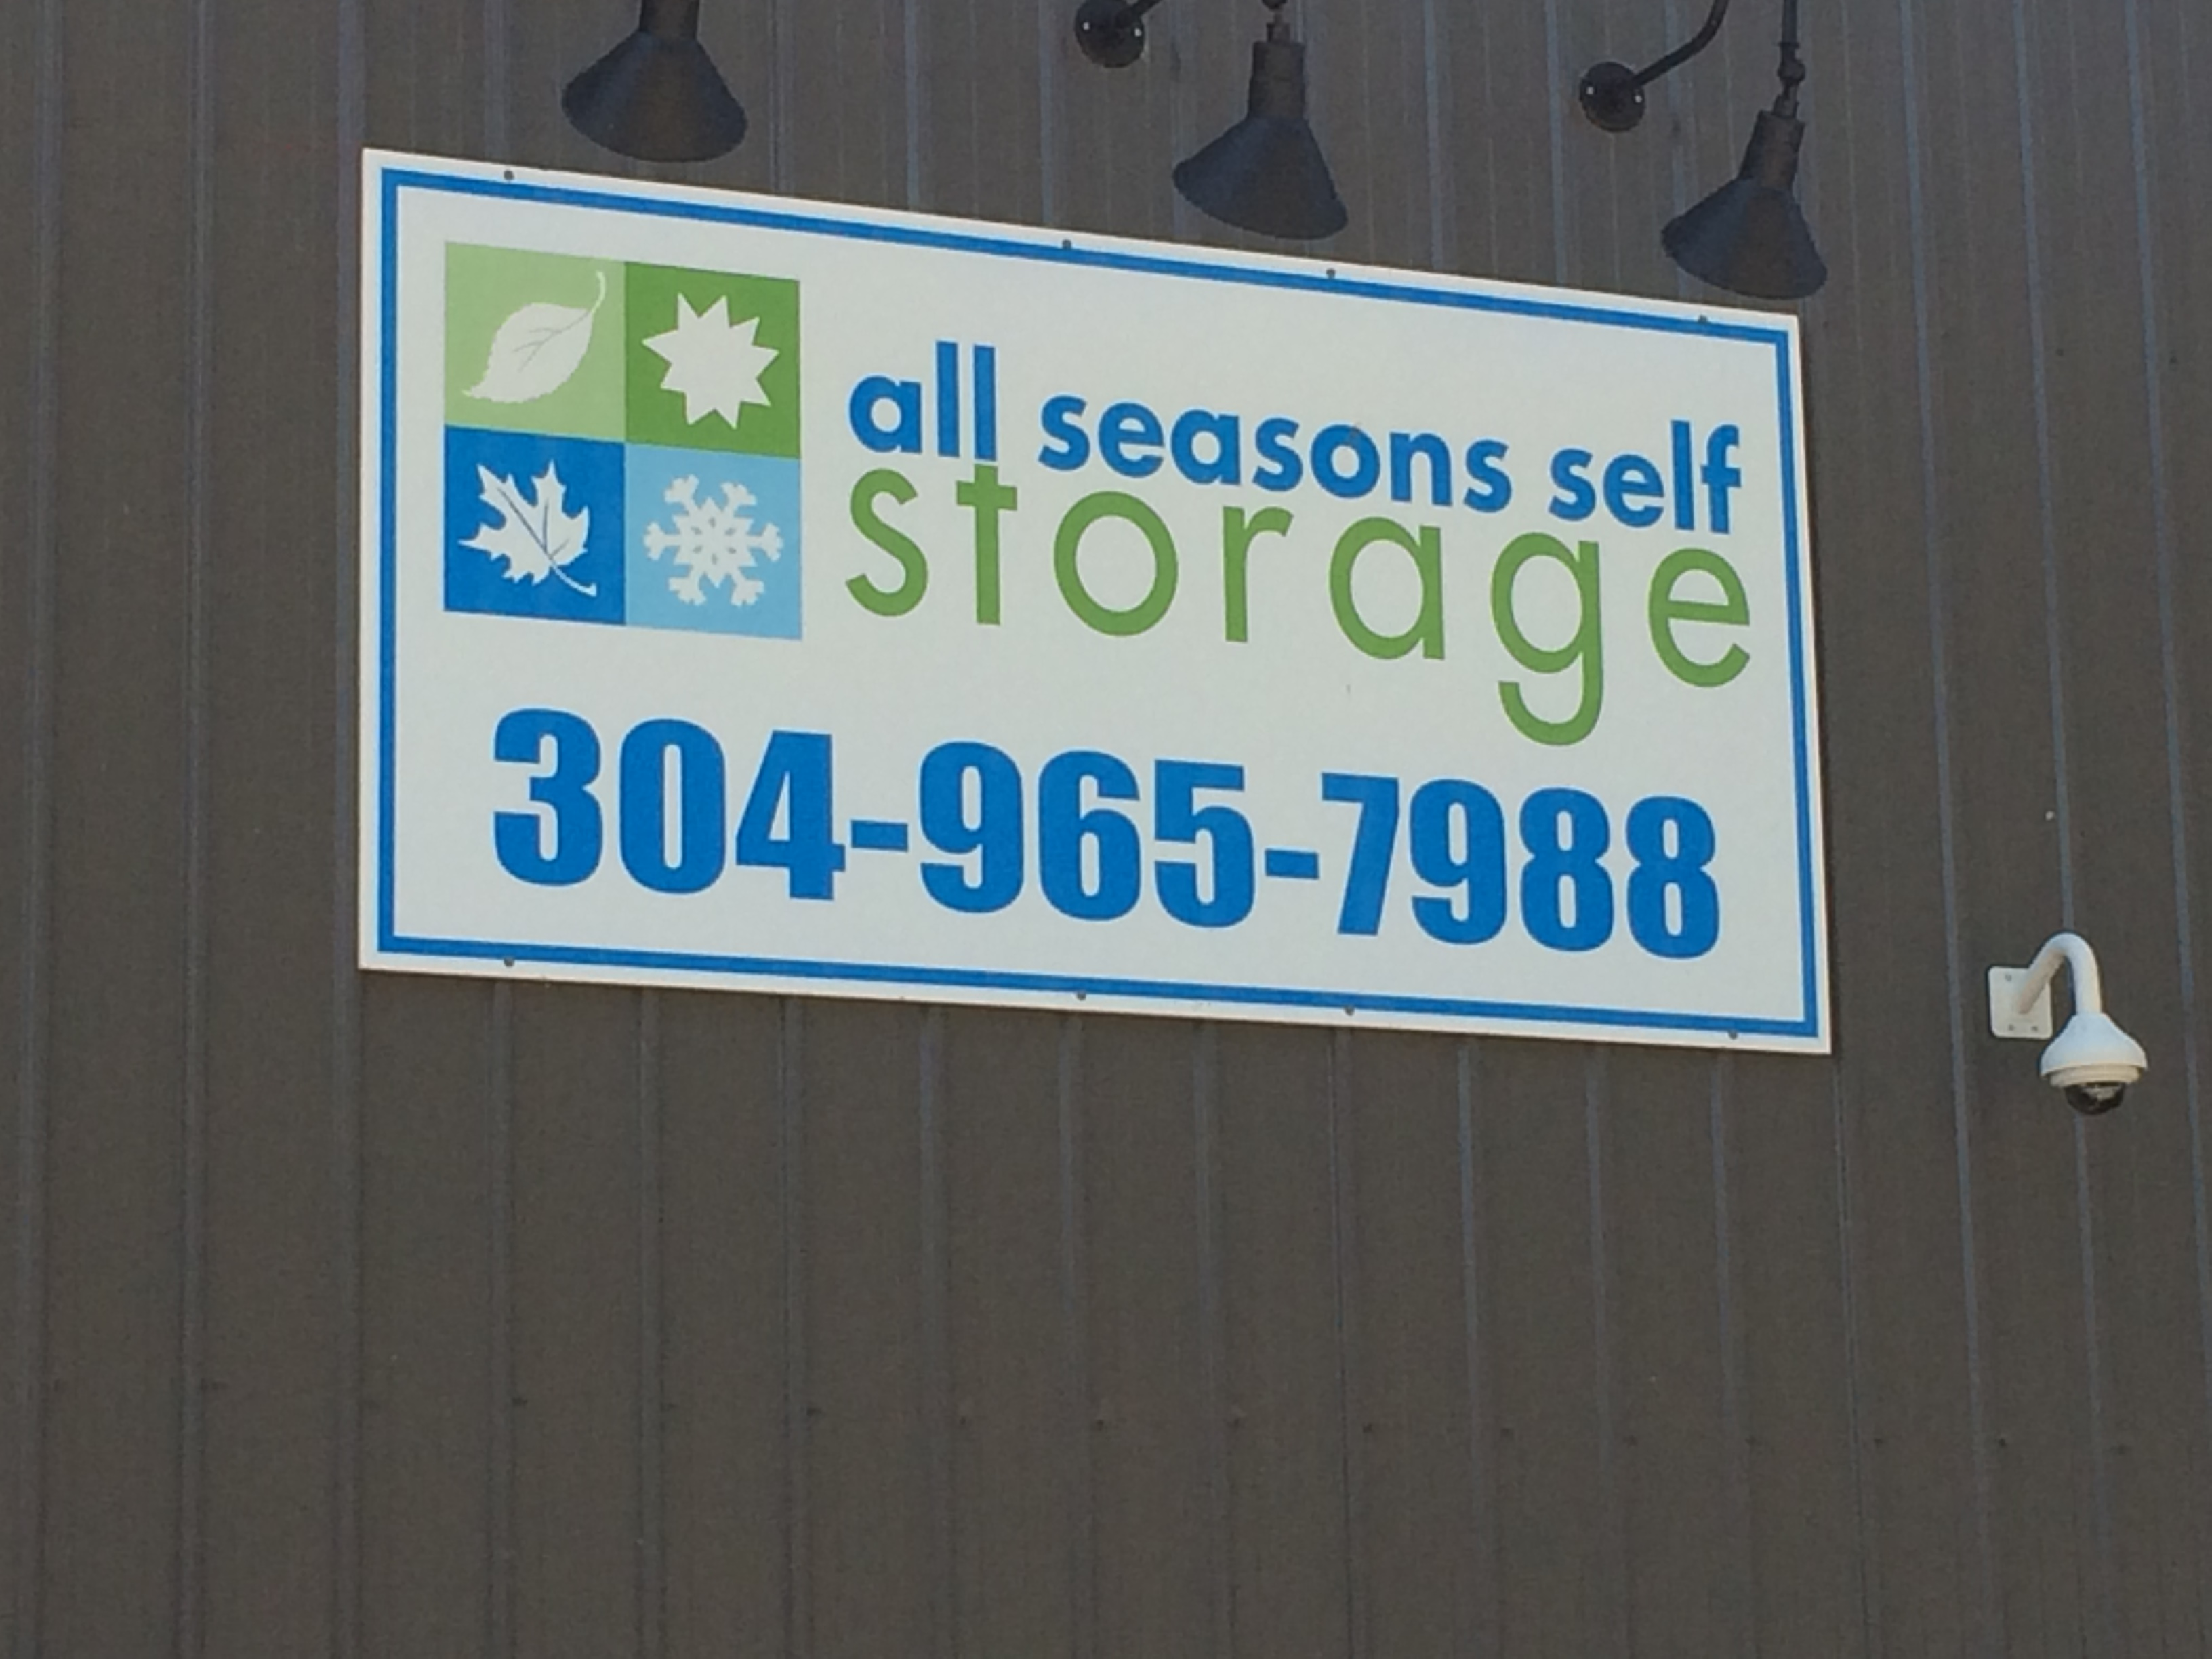 All Seasons Self Storage is located at: 5148 Elk River Road Elkview, WV 25026